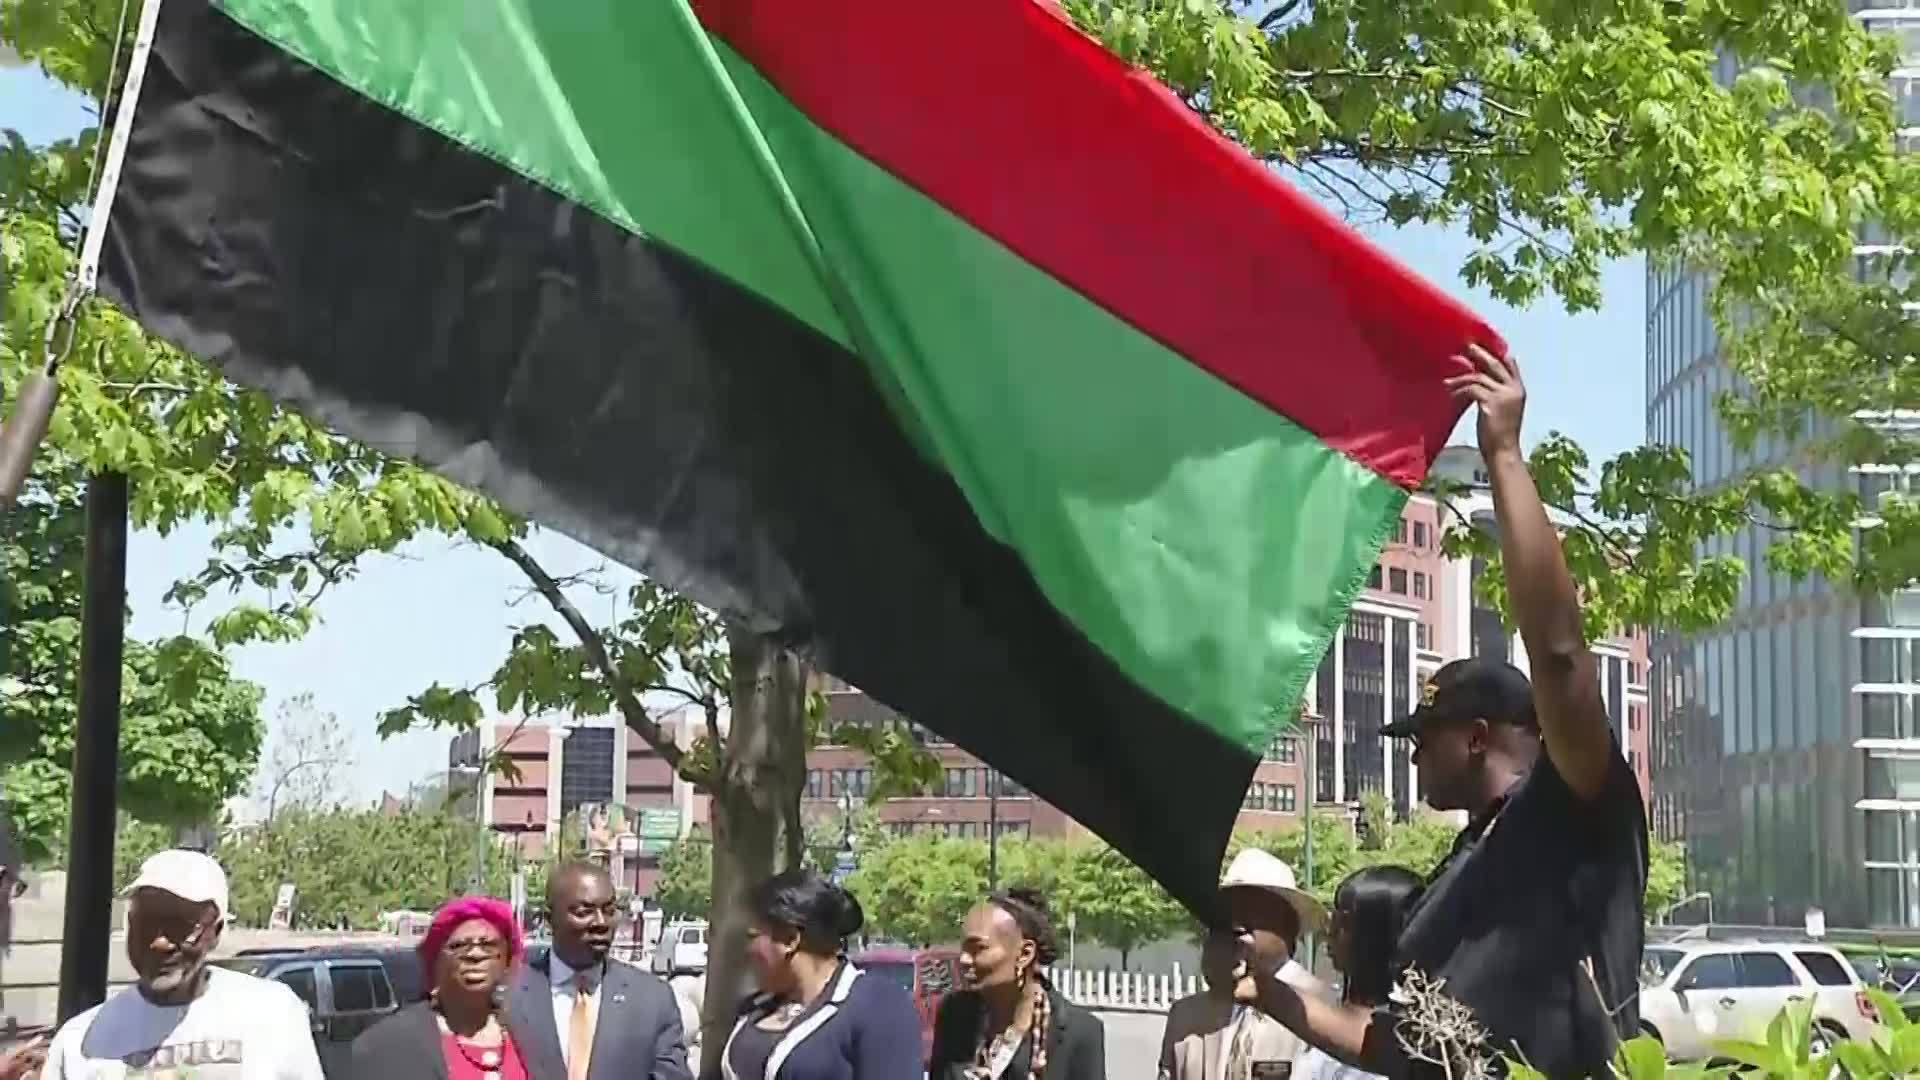 Juneteenth flag raised in Buffalo